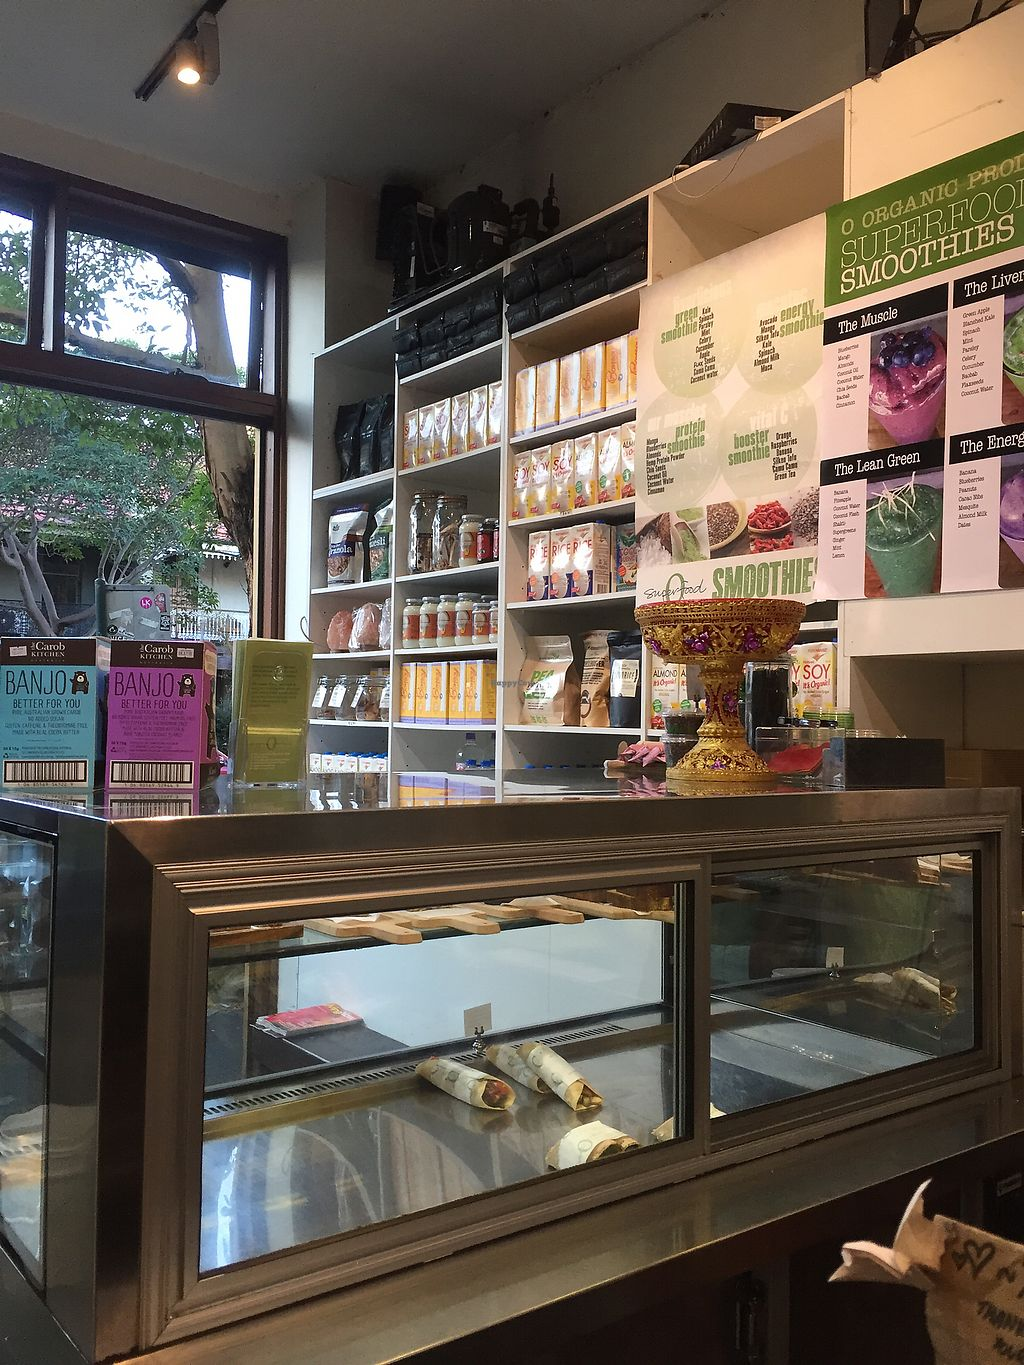 """Photo of Organic Produce Cafe  by <a href=""""/members/profile/JackSlack"""">JackSlack</a> <br/>Countertop area <br/> July 14, 2017  - <a href='/contact/abuse/image/14067/280403'>Report</a>"""